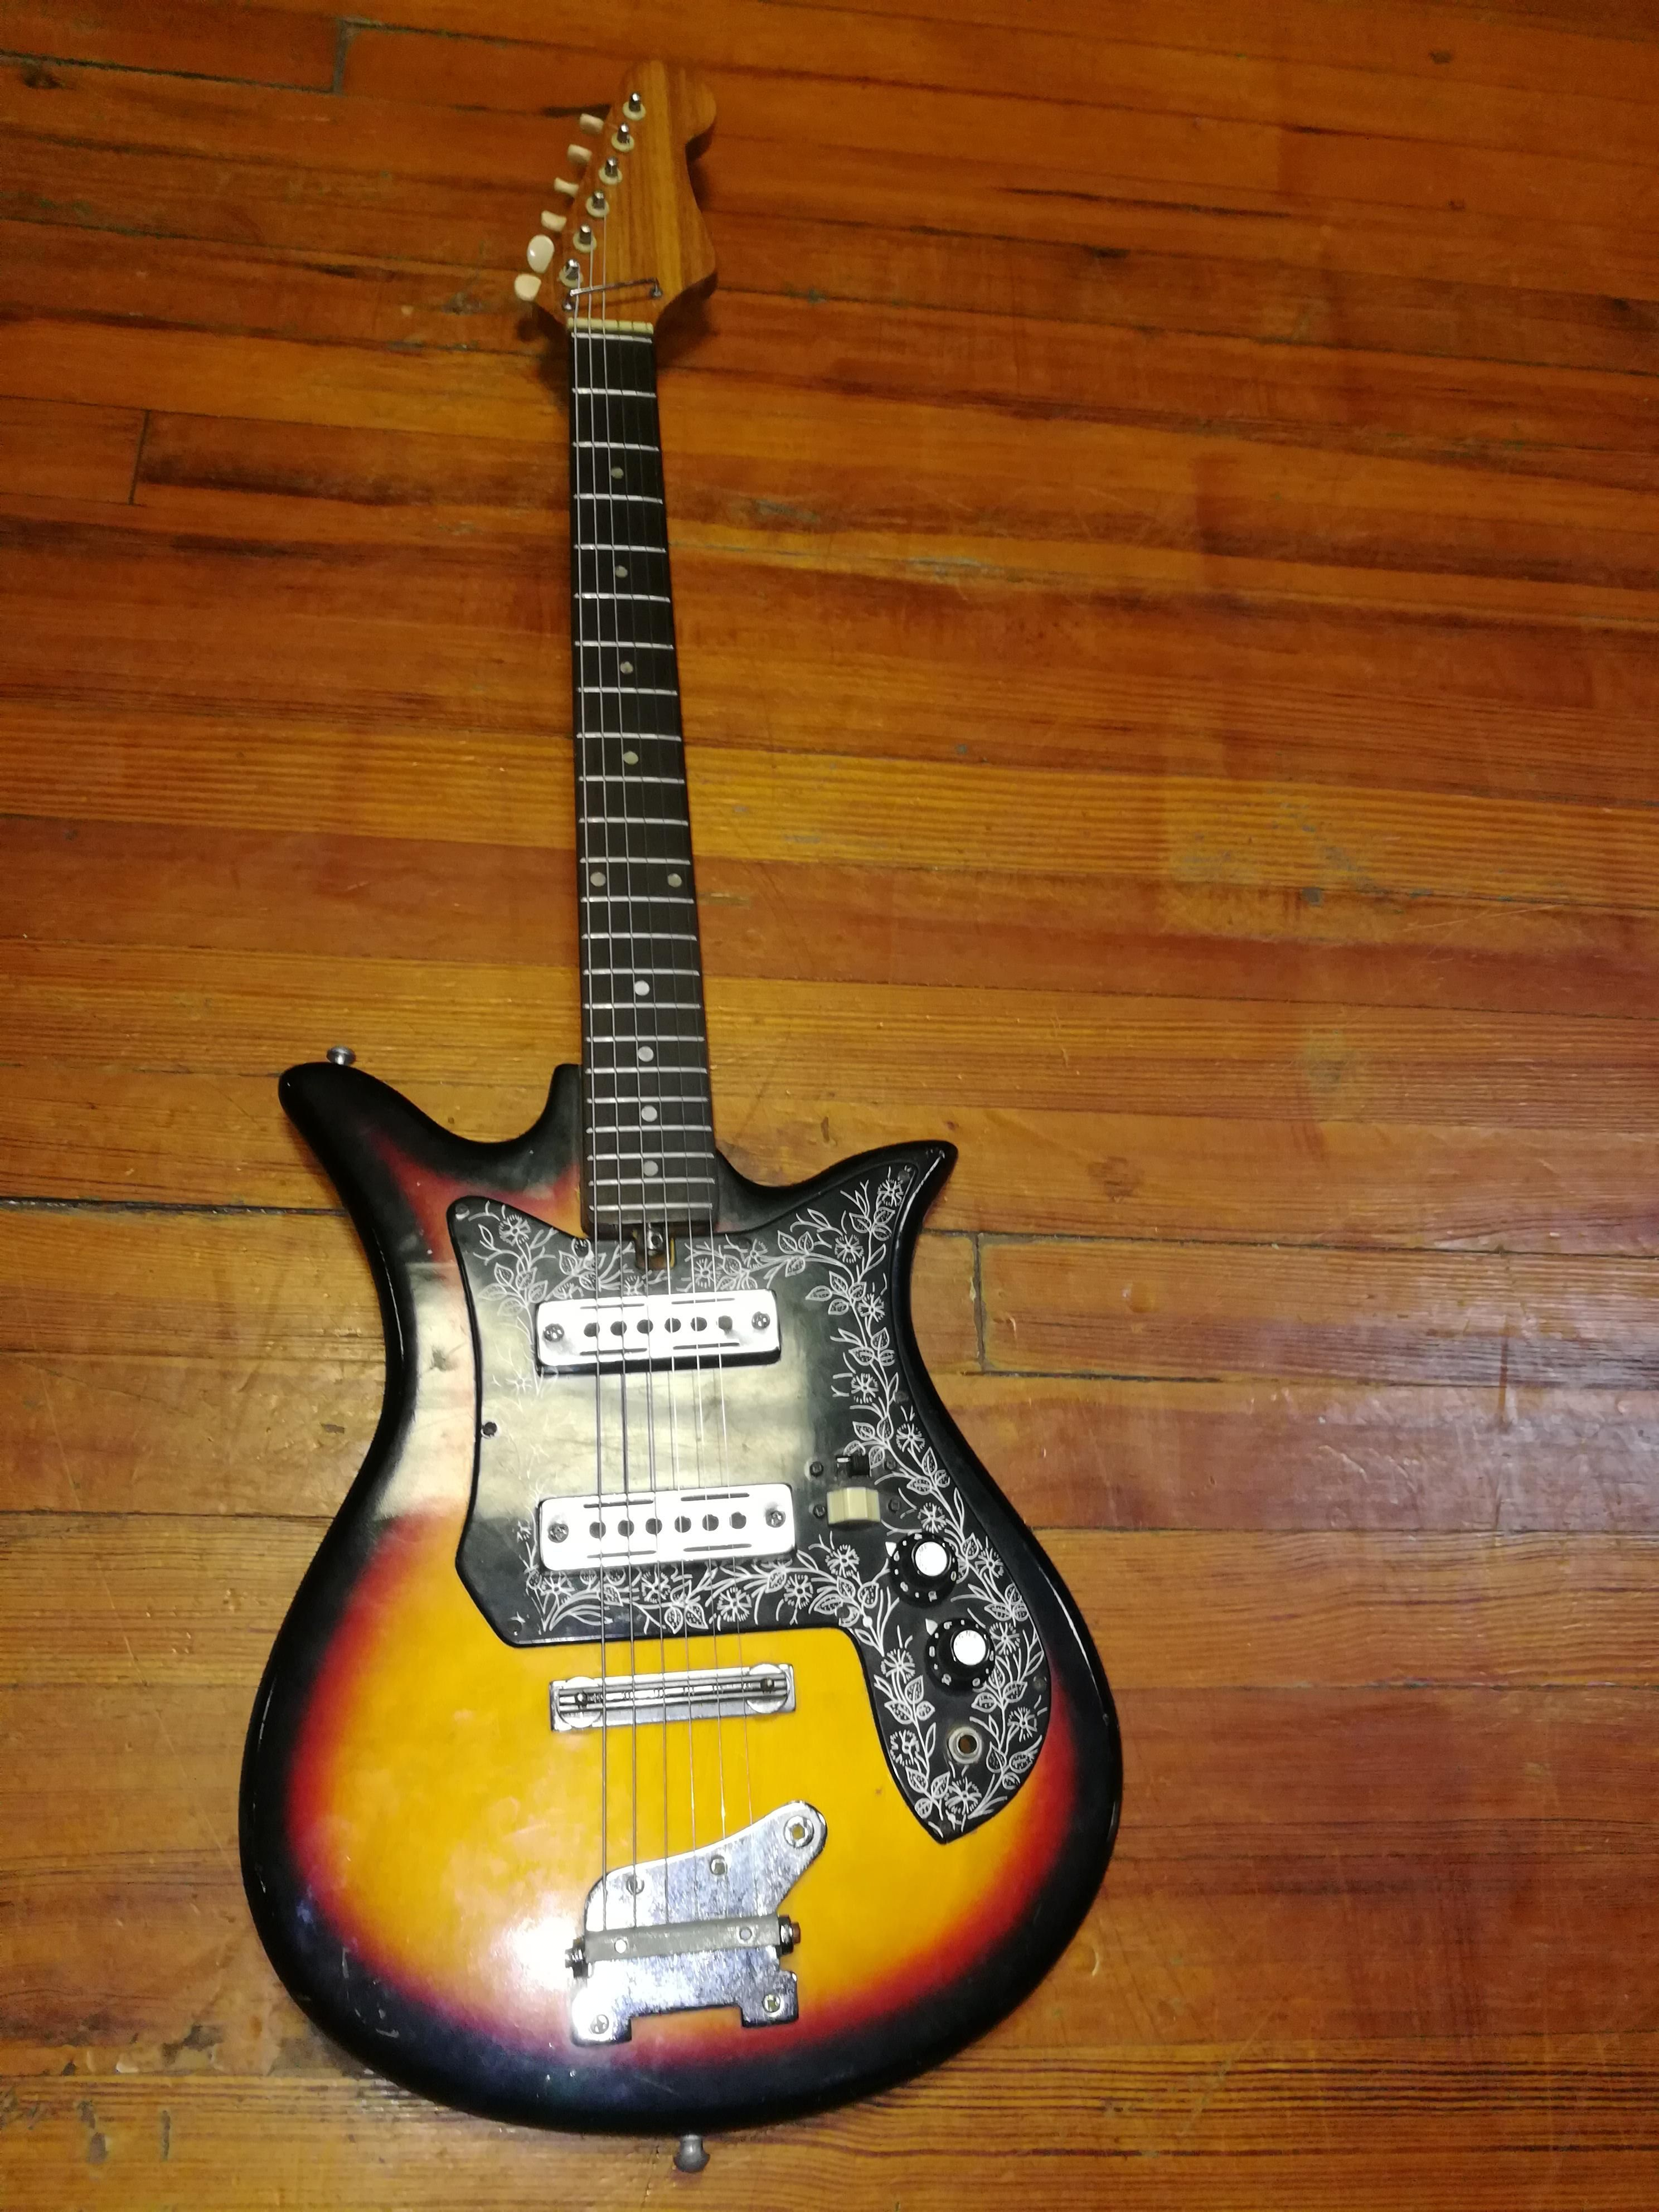 Hey everyone i posted this guitar a while ago and you